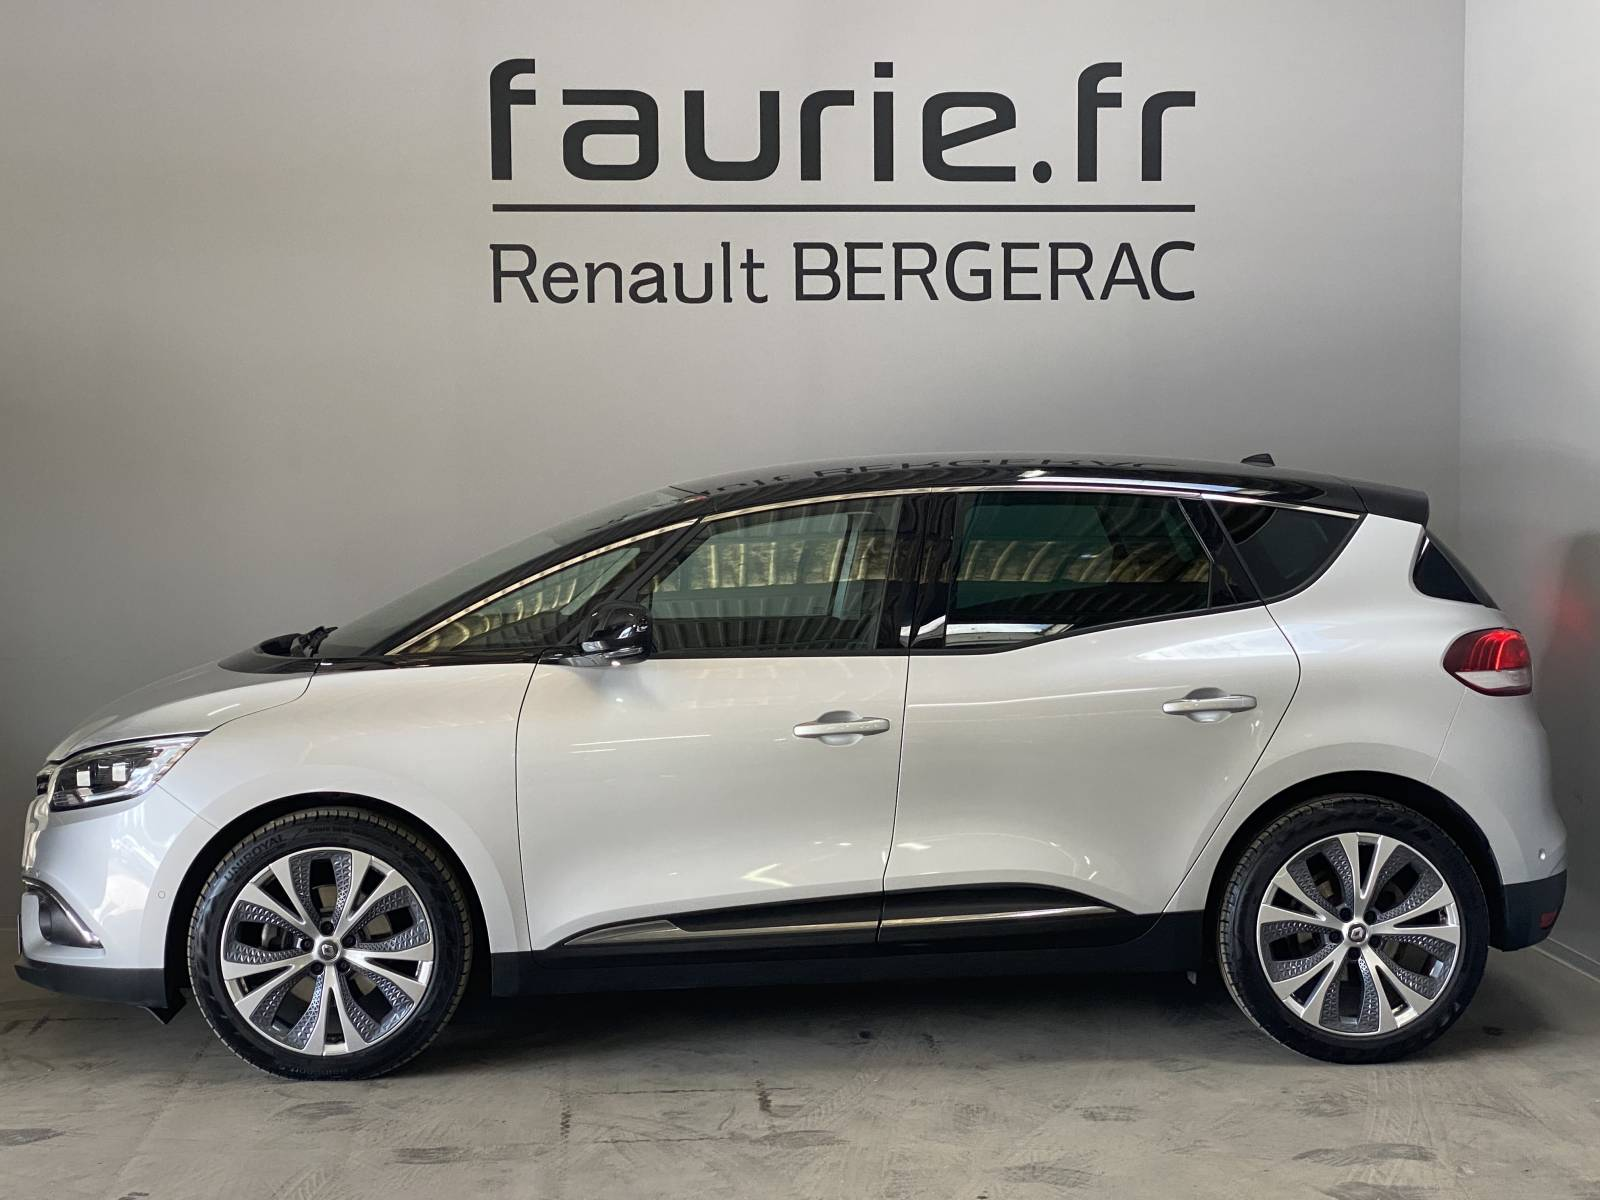 RENAULT Scenic dCi 130 Energy - véhicule d'occasion - Site Internet Faurie - Renault - Faurie Auto Bergerac - 24100 - Bergerac - 9